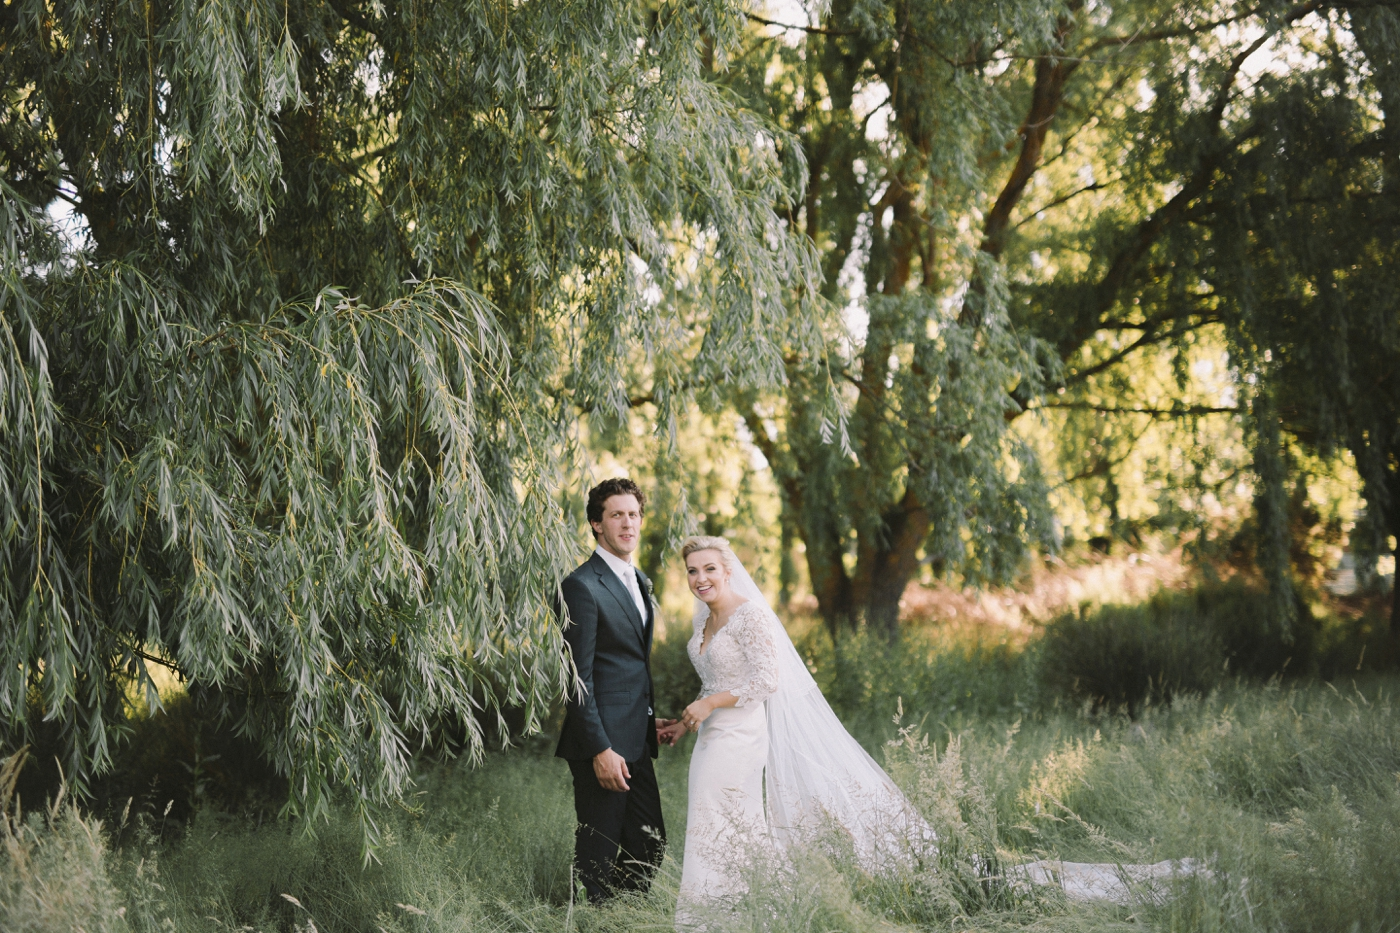 Penny and Michael - Adelaide Hills Wedding Photographer - Natural wedding photography in Adelaide - Katherine Schultz_0070.jpg